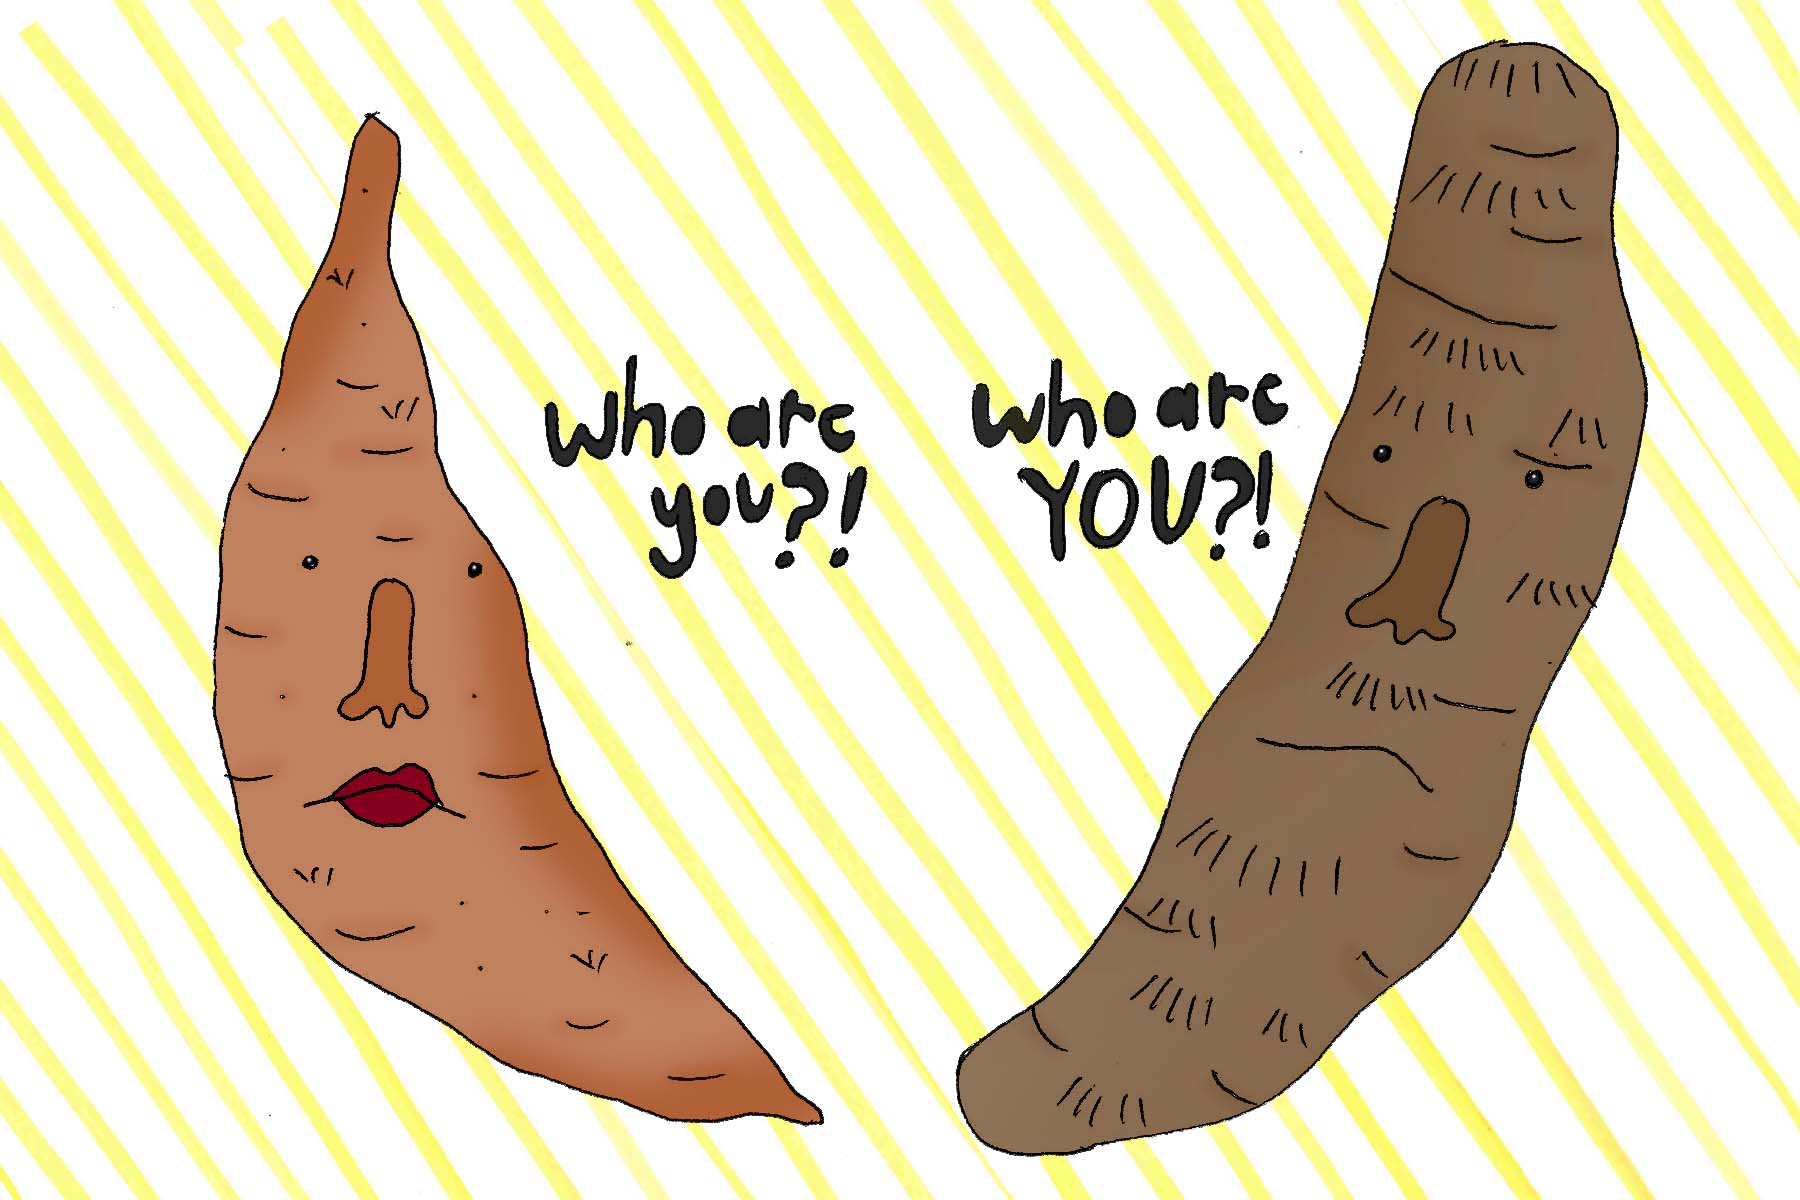 The meeting between a Sweet potato and a true yam.